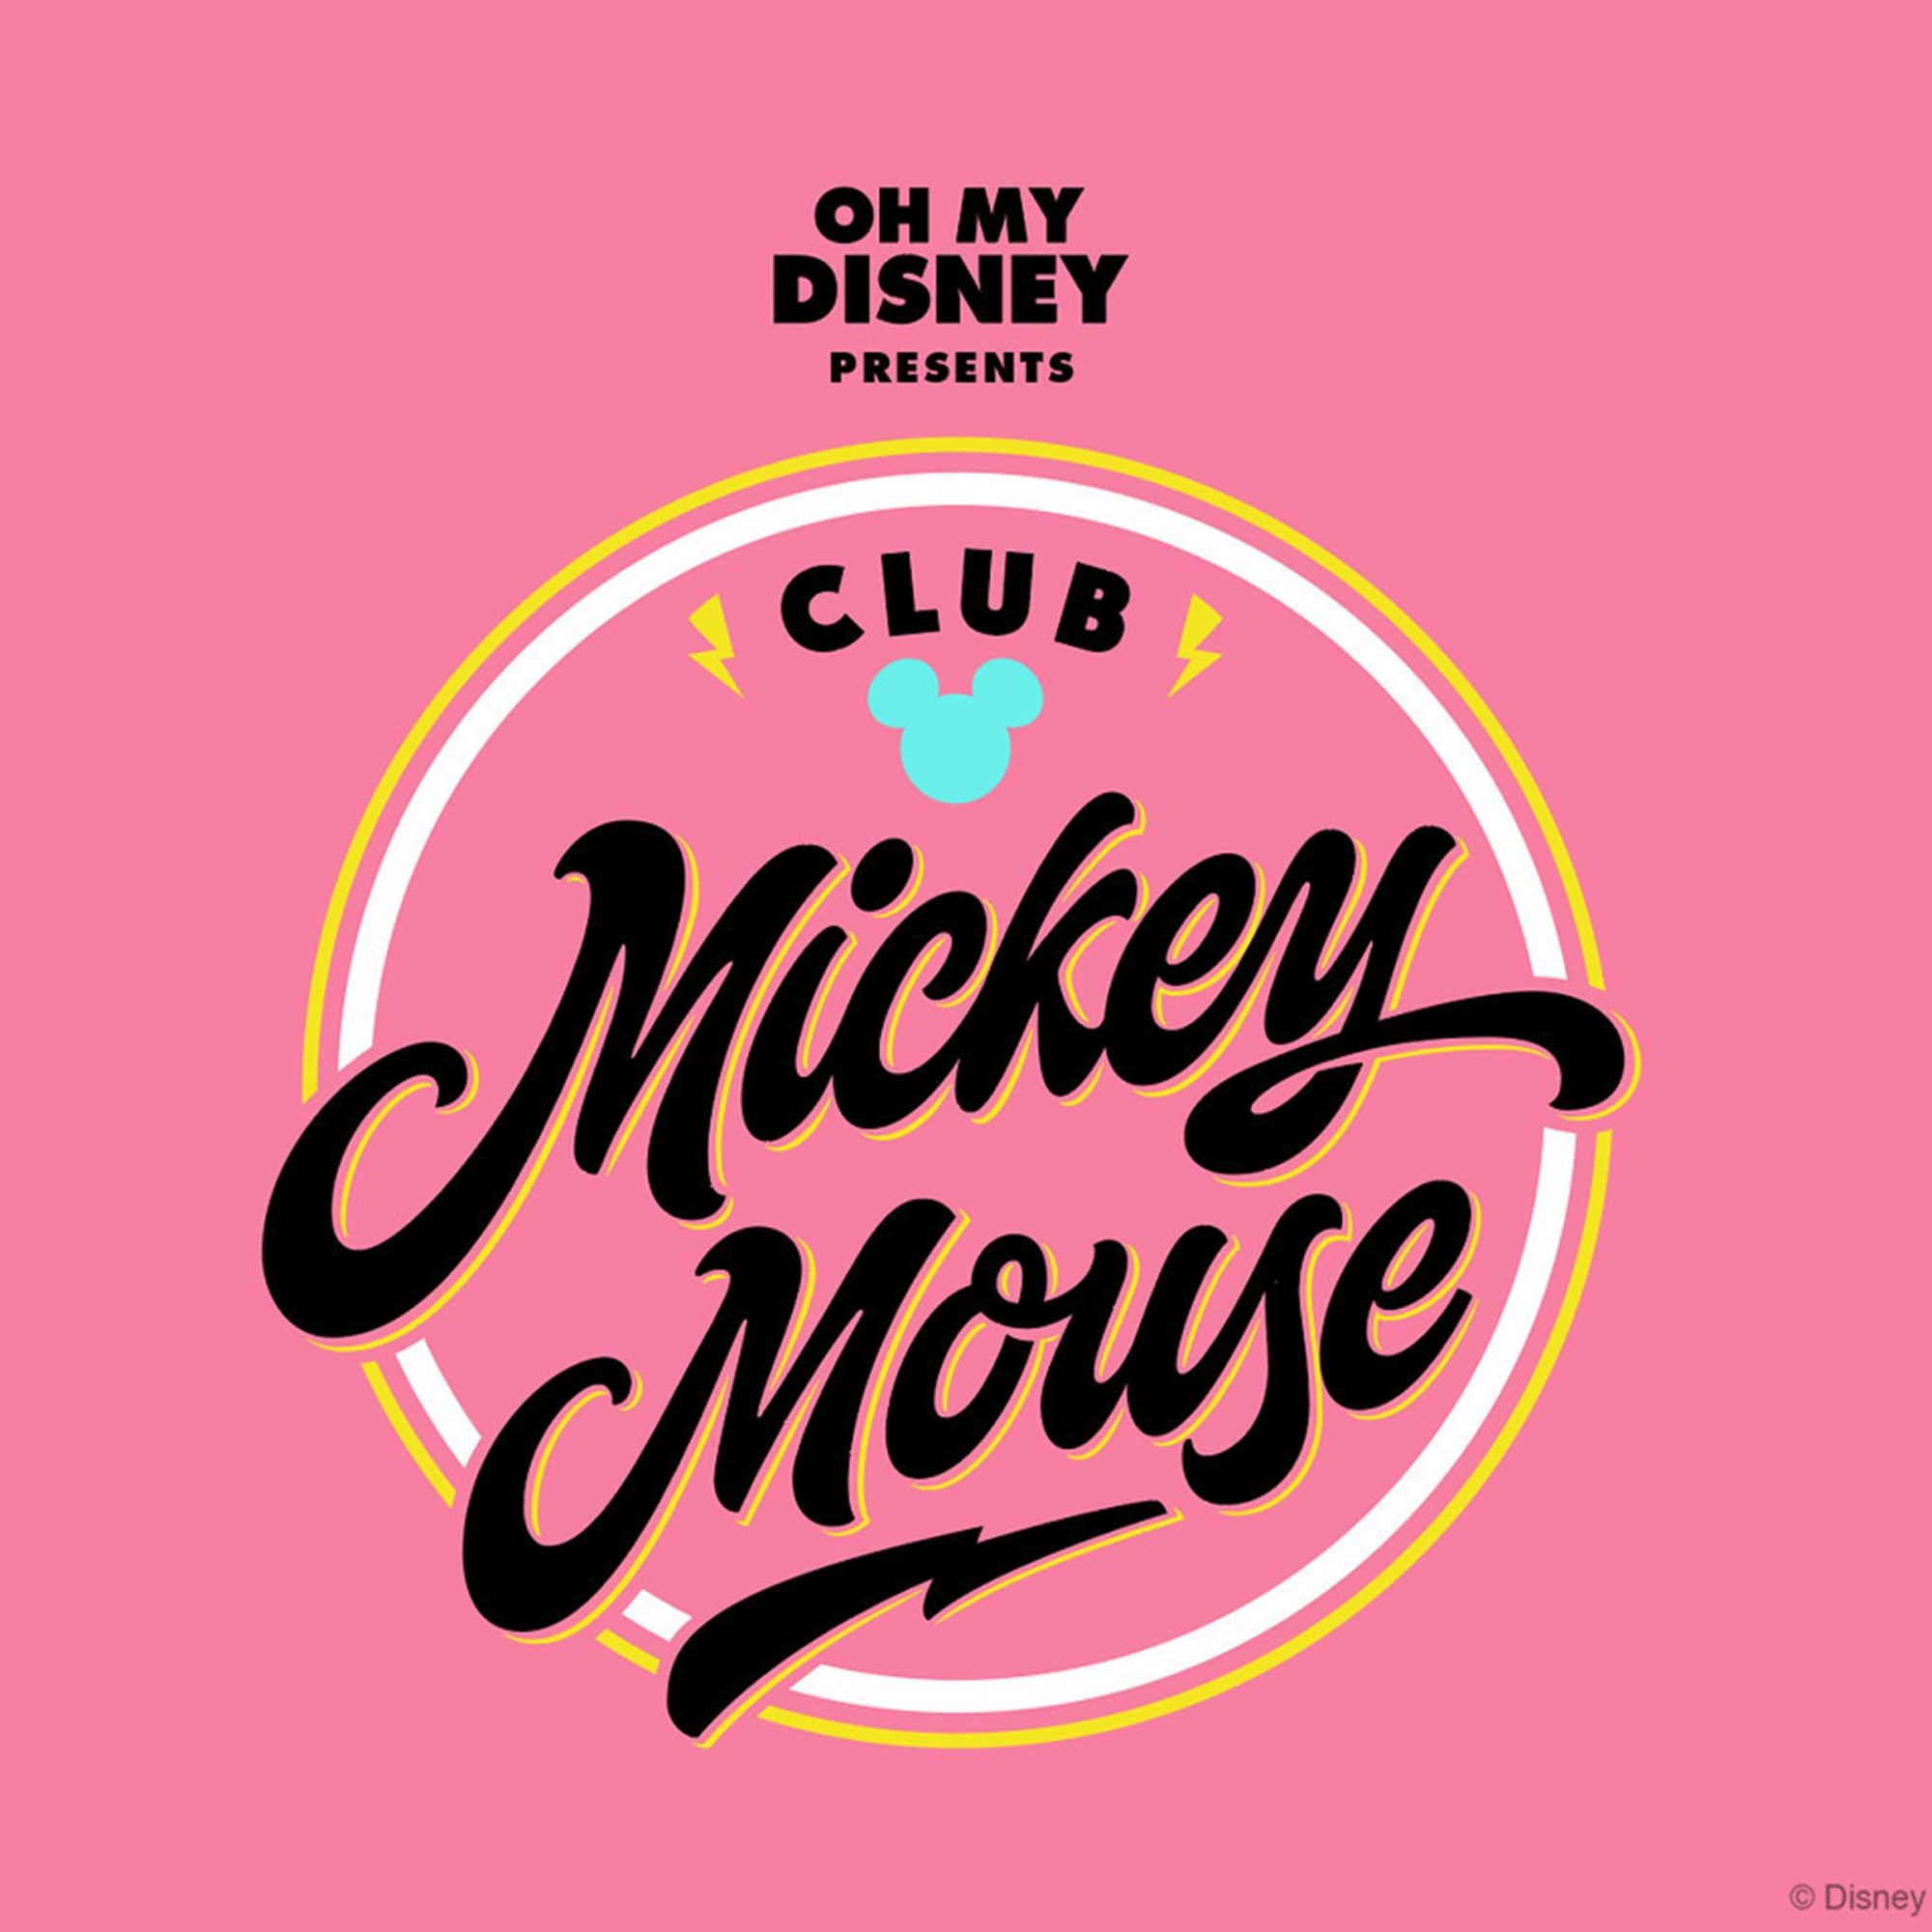 Club Mickey Mouse Cover Art. Photo courtesy of Disney Digital Network.